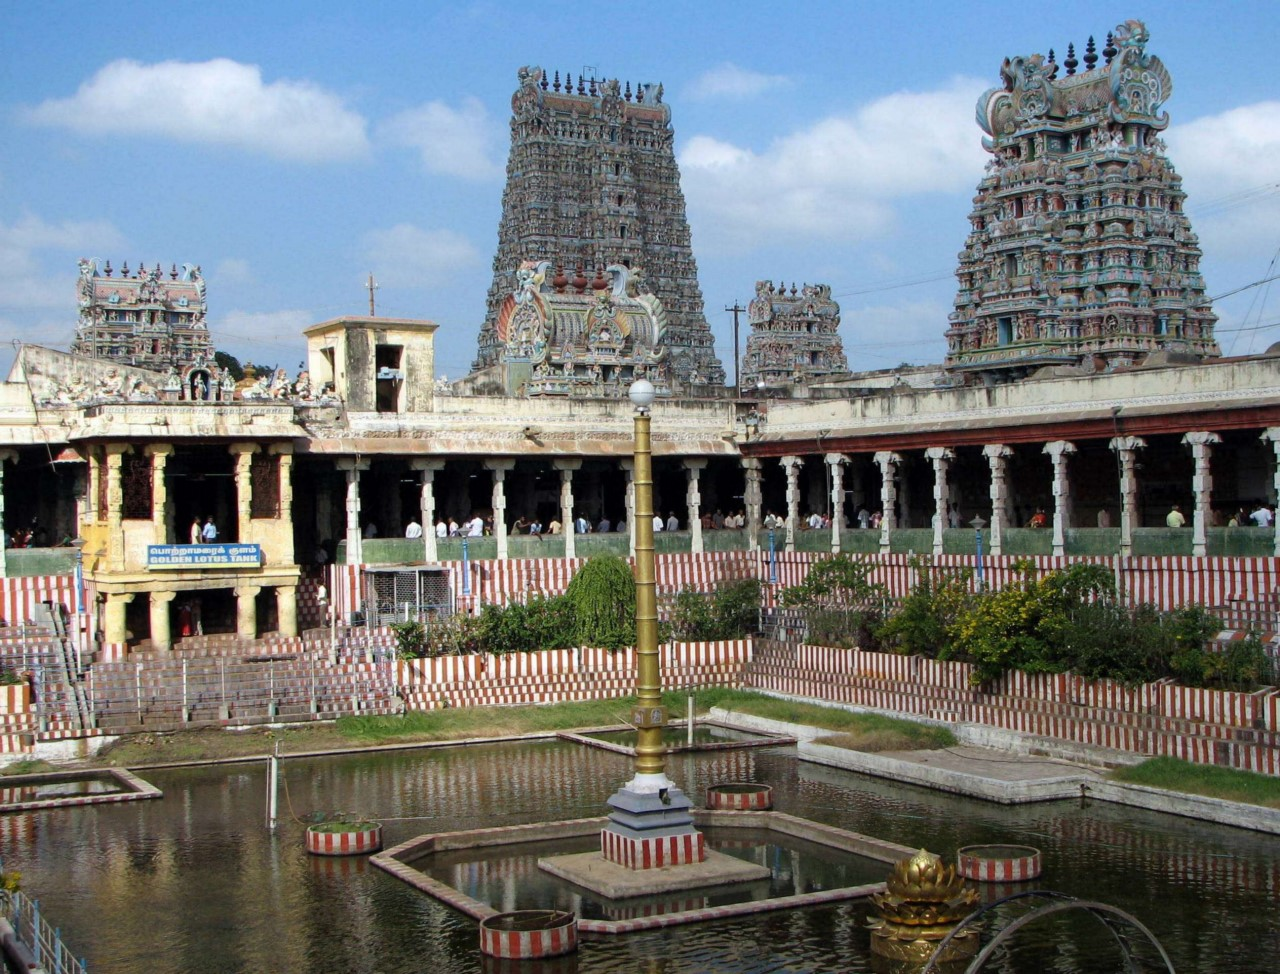 madurai meenakshi amman temple Information about meenakshi amman temple in madurai like attractions, visiting timings, history, entrance fee, how to reach, instructions, dress code.